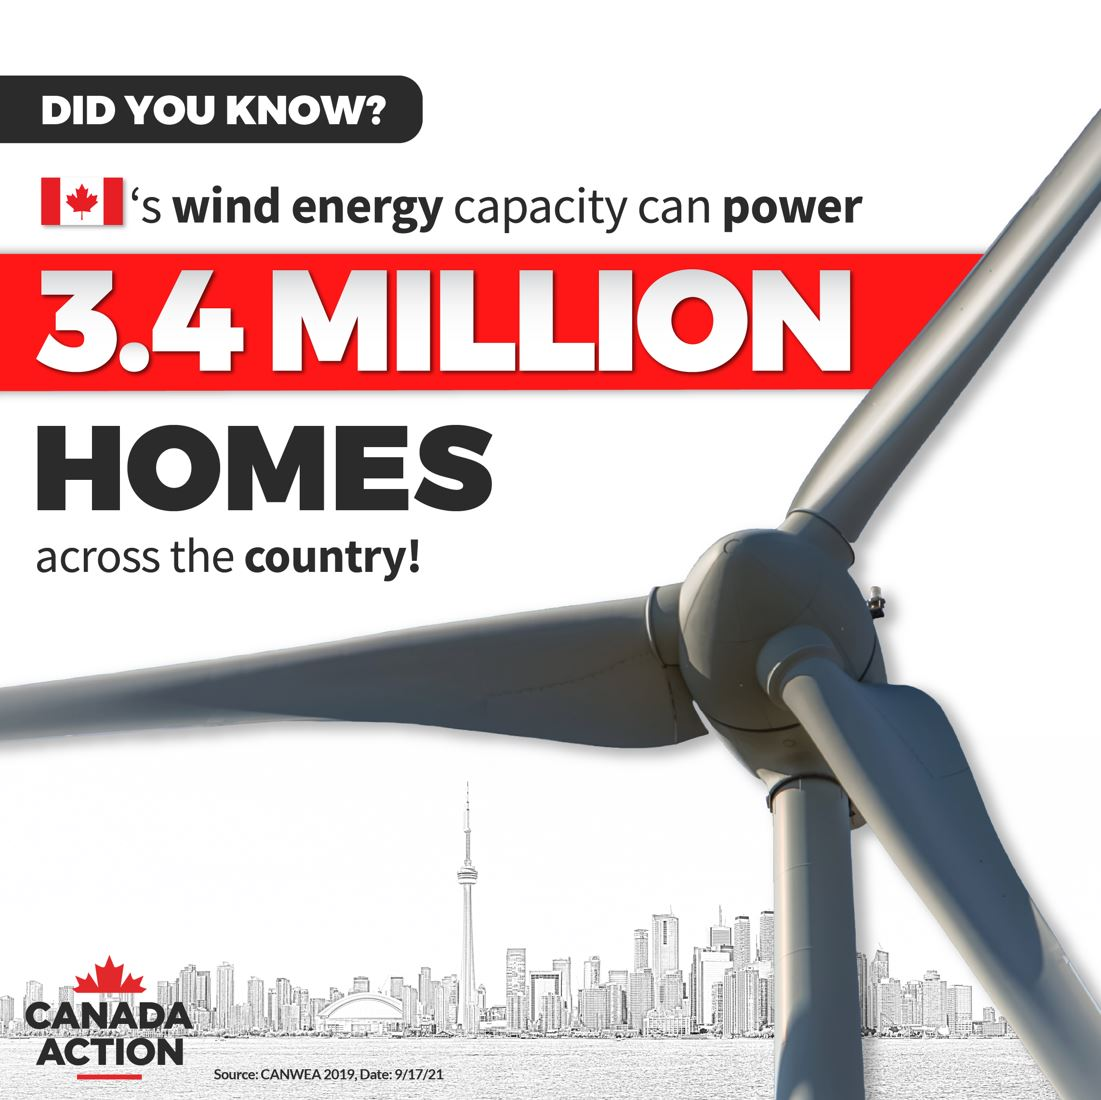 Canada's wind power capacity could supply electricity to 3.4 million homes across the country 2